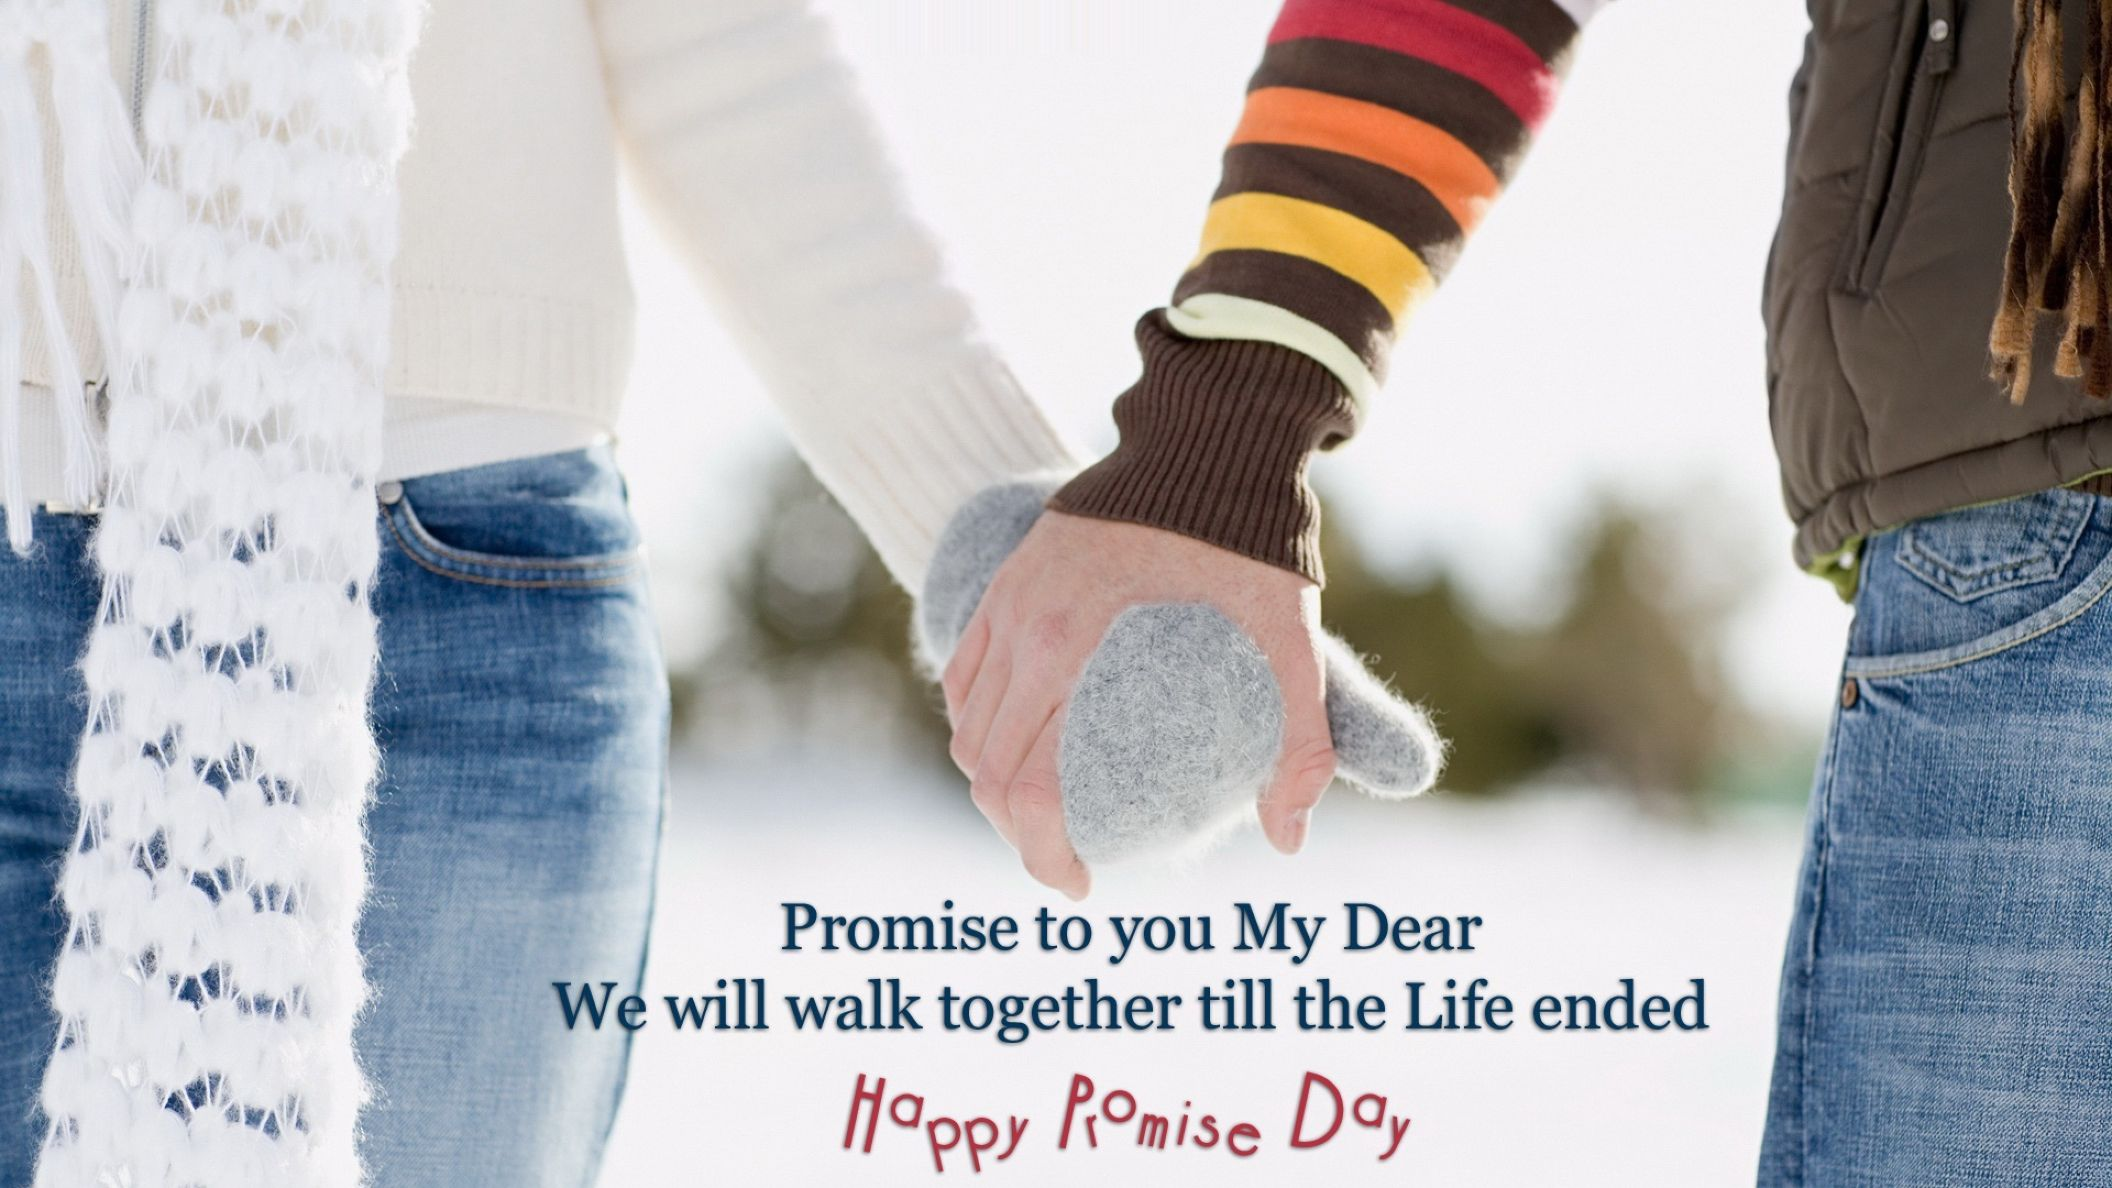 Download free HD Happy Promise Day Quotes Images Wallpaper, image